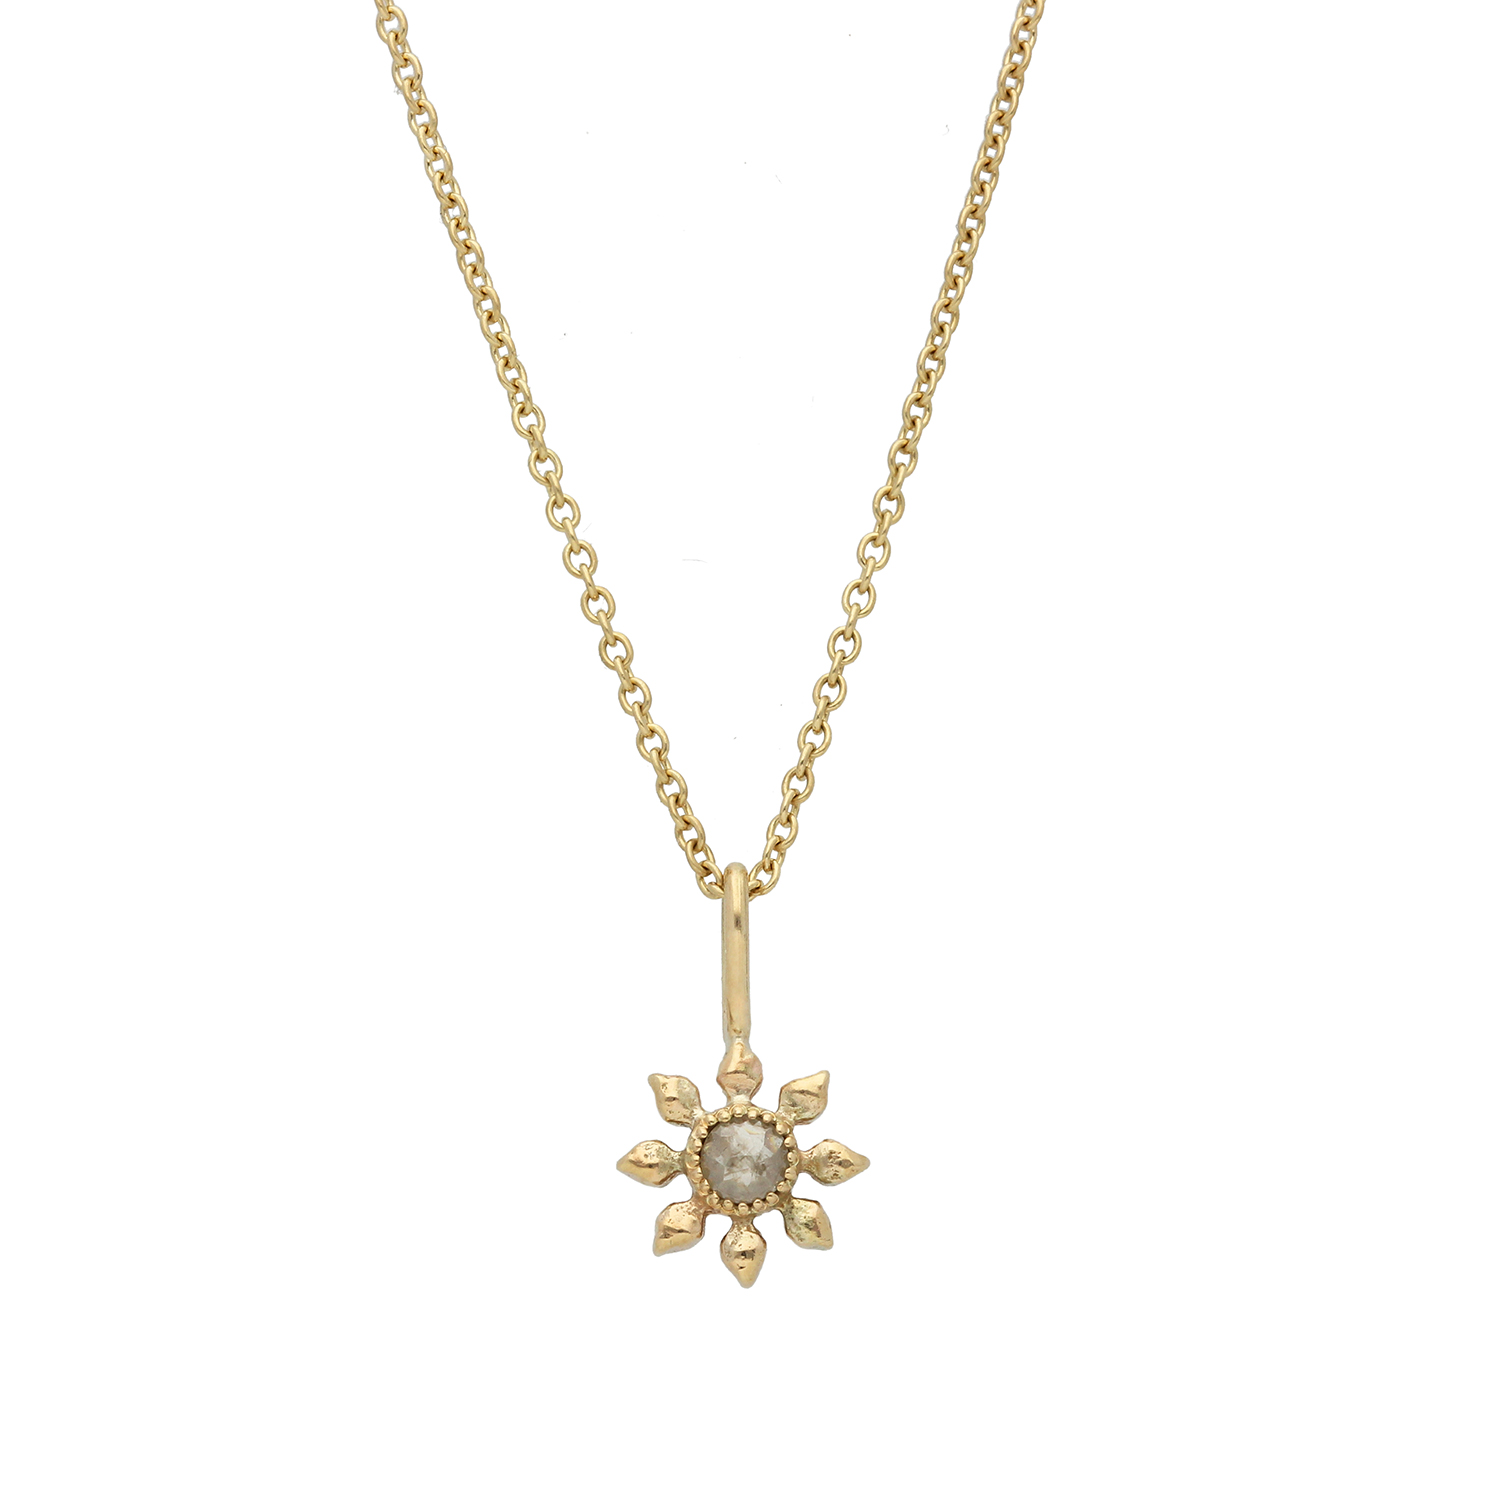 Natalie Perry Jewellery, Diamond Flower Necklace